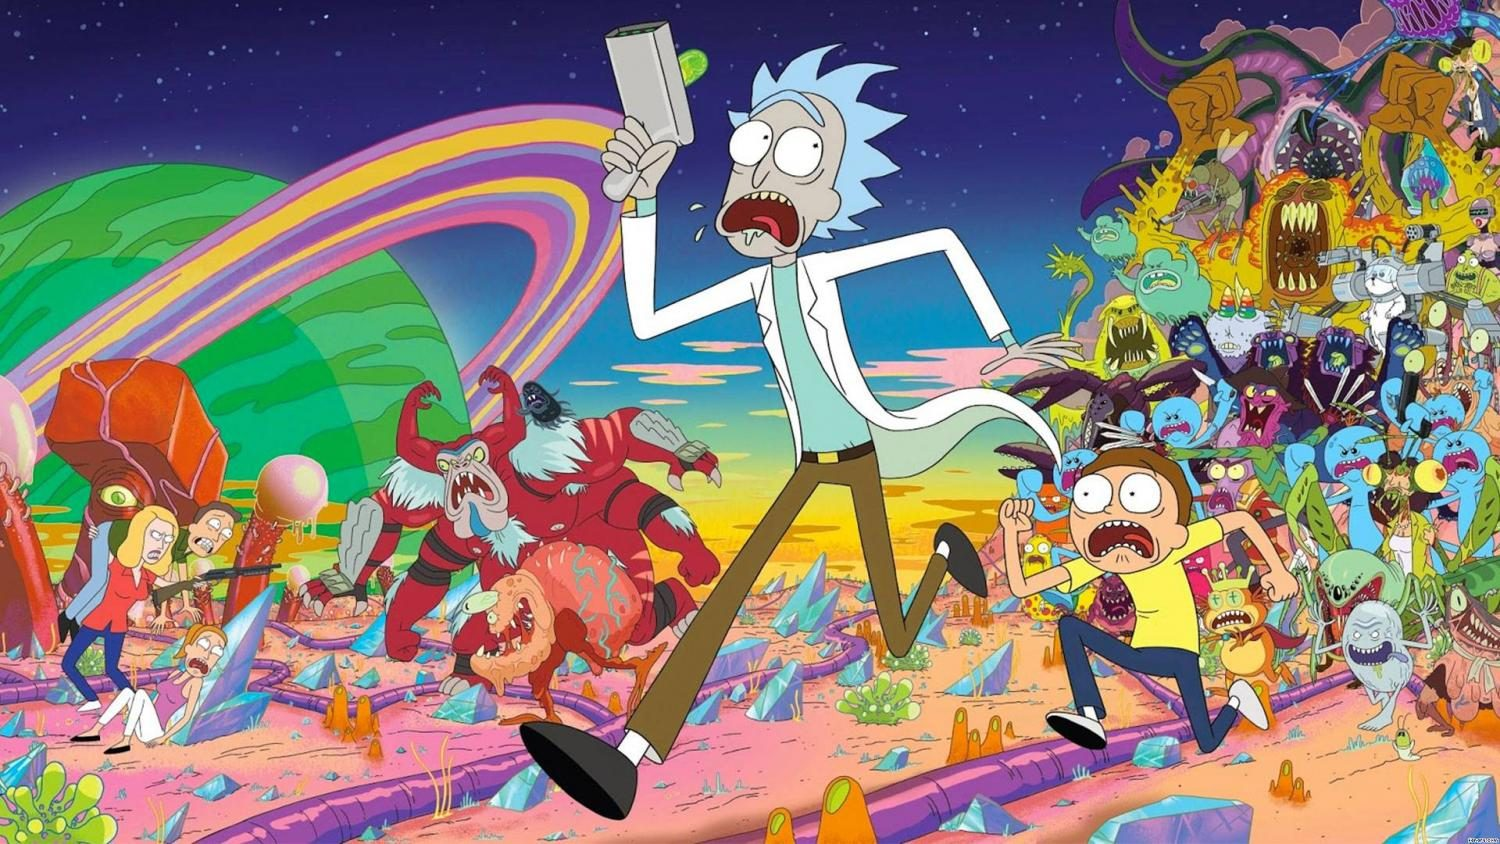 Rick+and+Morty